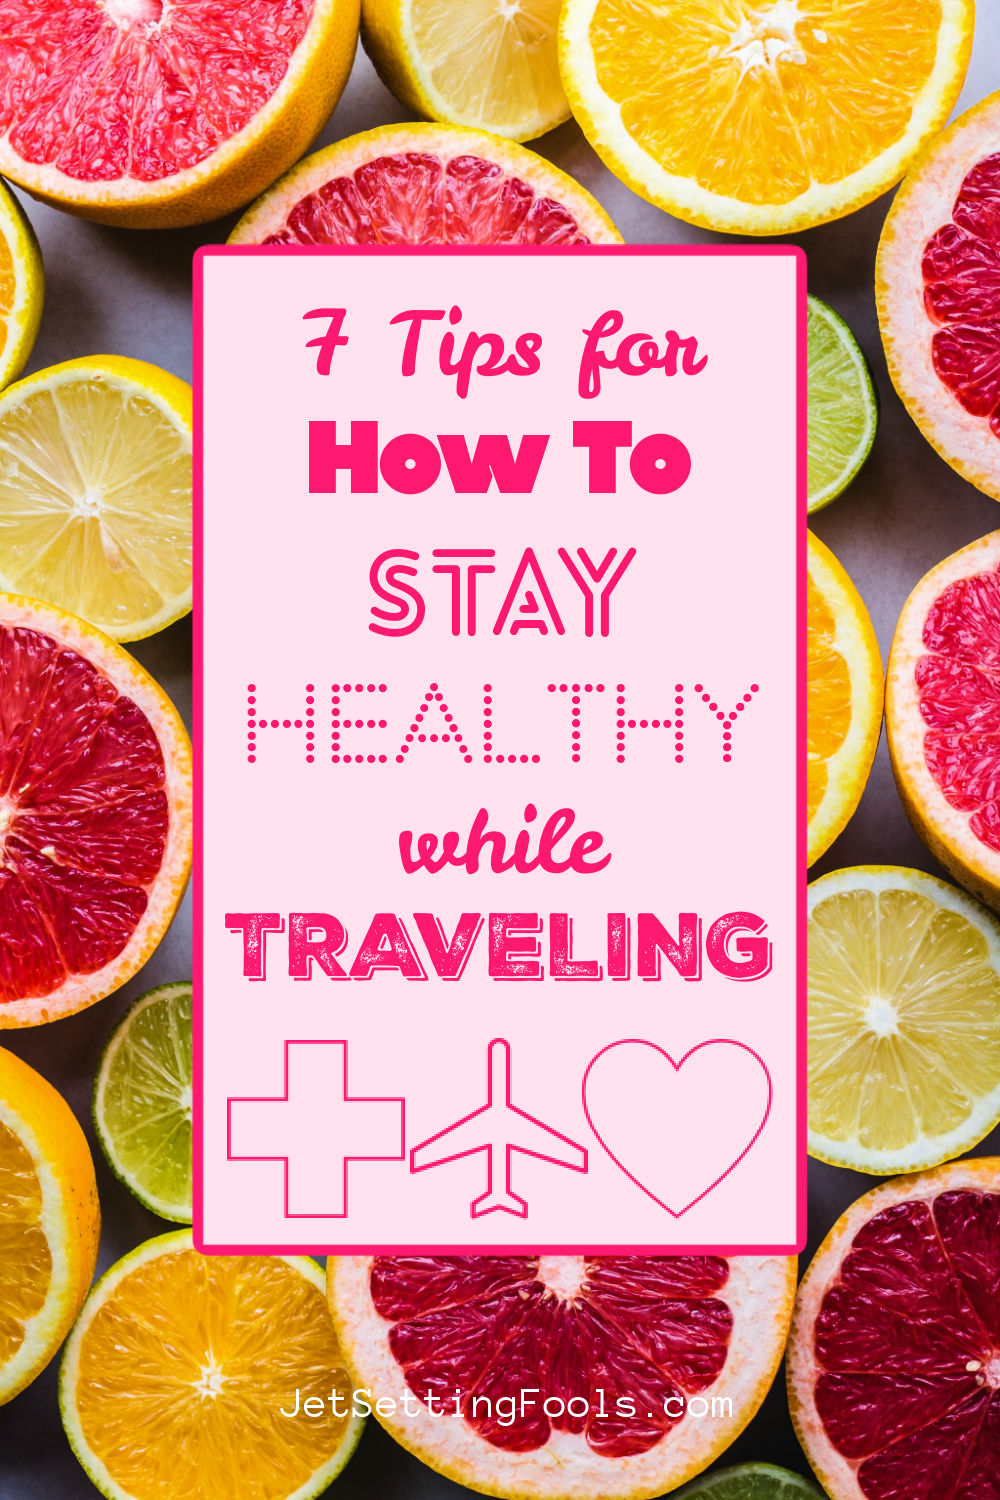 Tips for How To Stay Healthy While Traveling by JetSettingFools.com